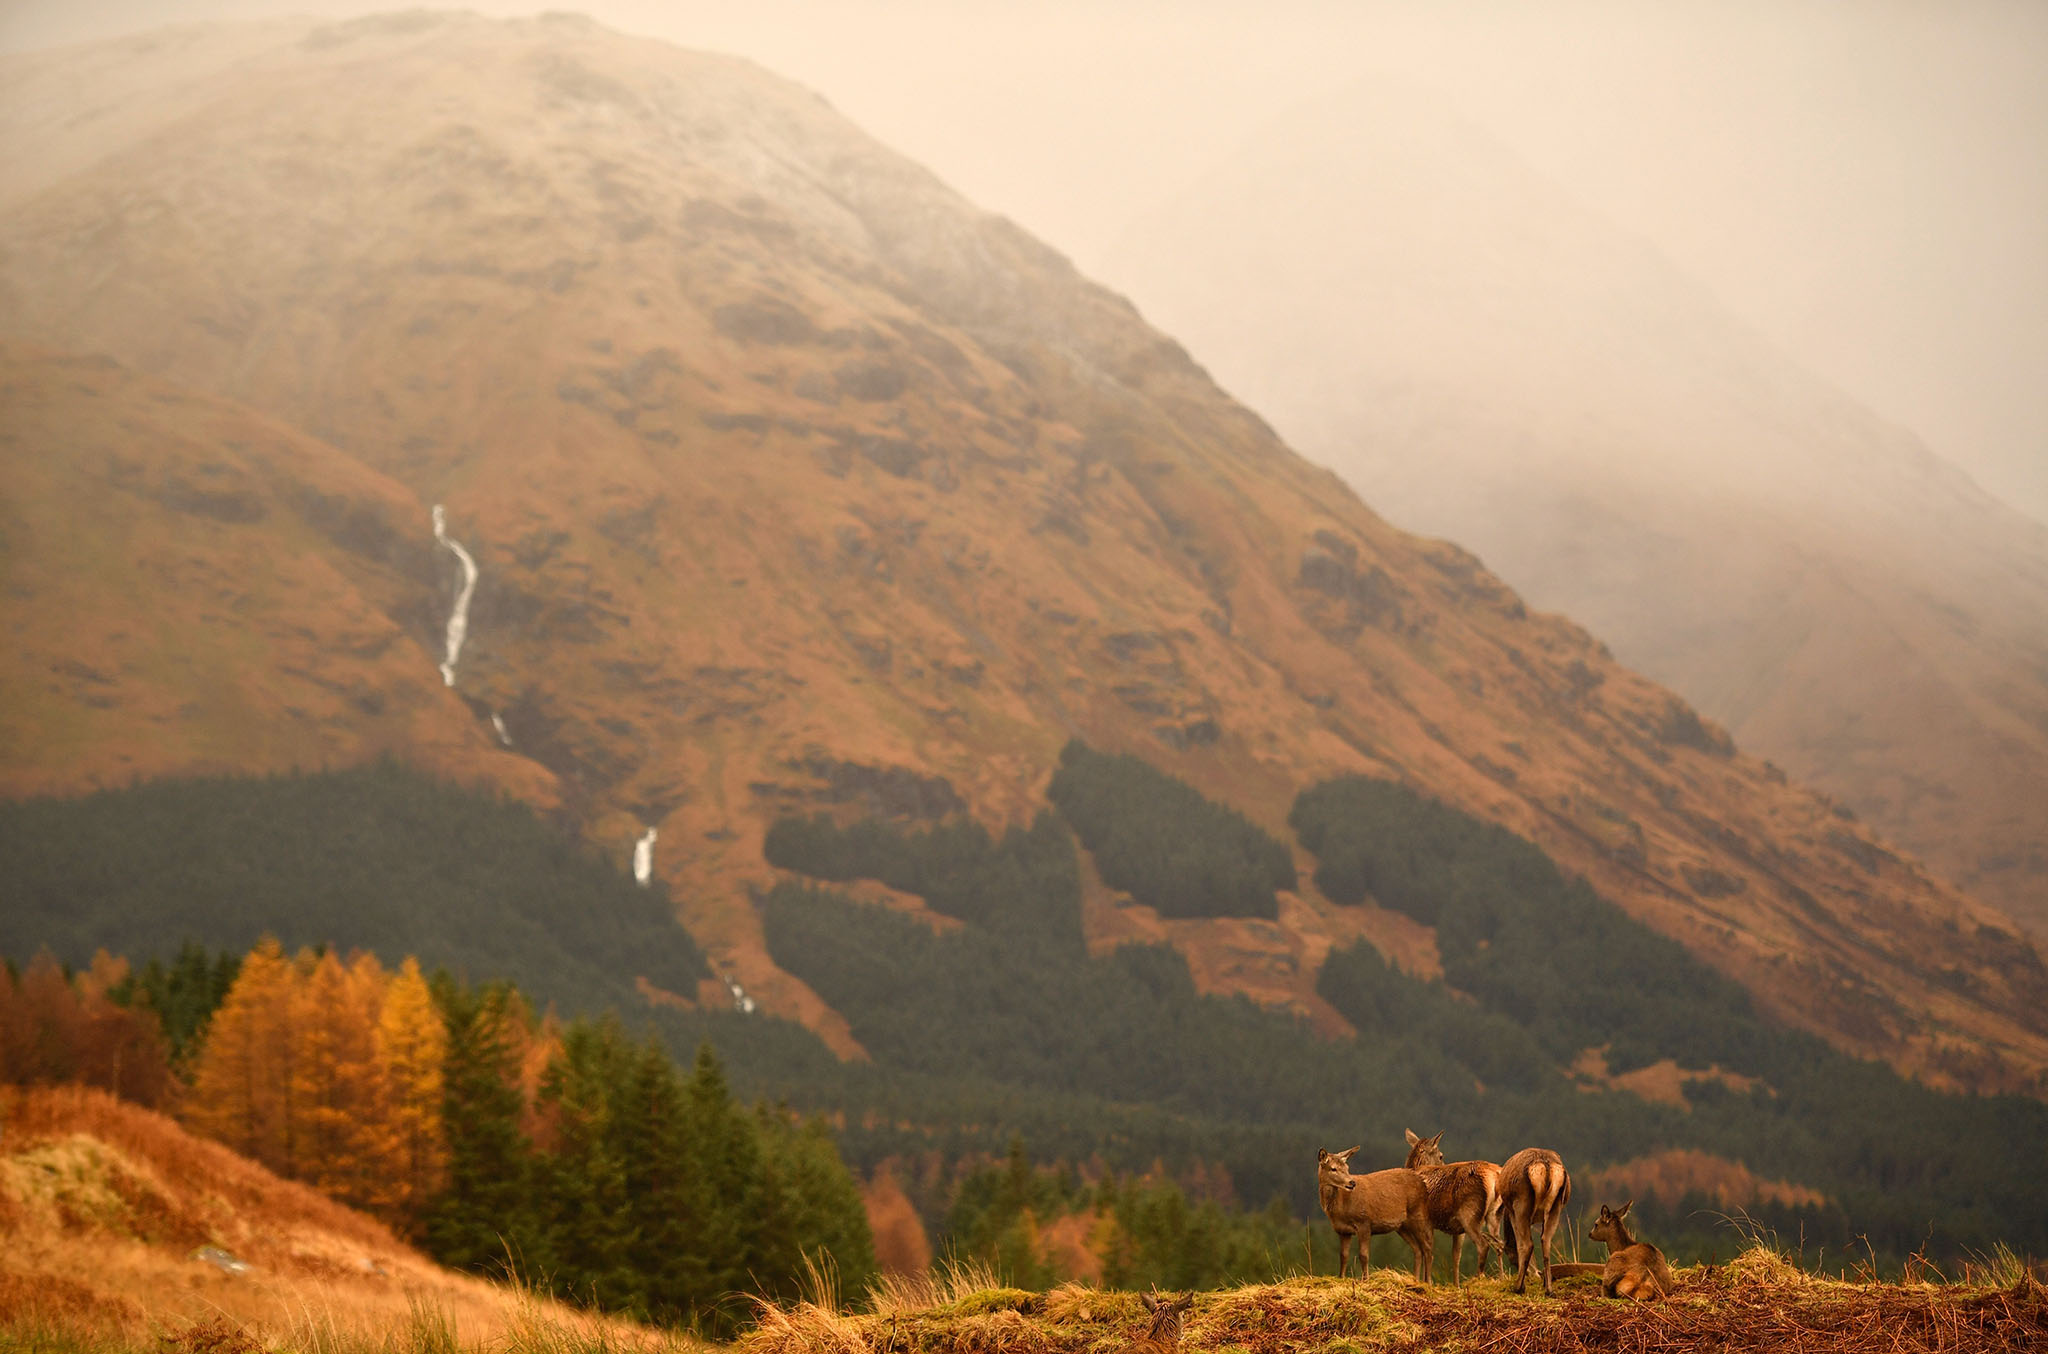 NOVEMBER 16:  Scottish red deer graze in Glen Etive following the end of the rutting season on Novemebr 16, 2016 in Glen Etive,Scotland. The rutting season sees the large dominant red deer stags compete against each other for mating rights and can be heard roaring and bellowing in an attempt to attract the hinds. The rut draws to a close in early November when the stags spend the winter feeding to regain strength for the following season.  (Photo by Jeff J Mitchell/Getty Images)